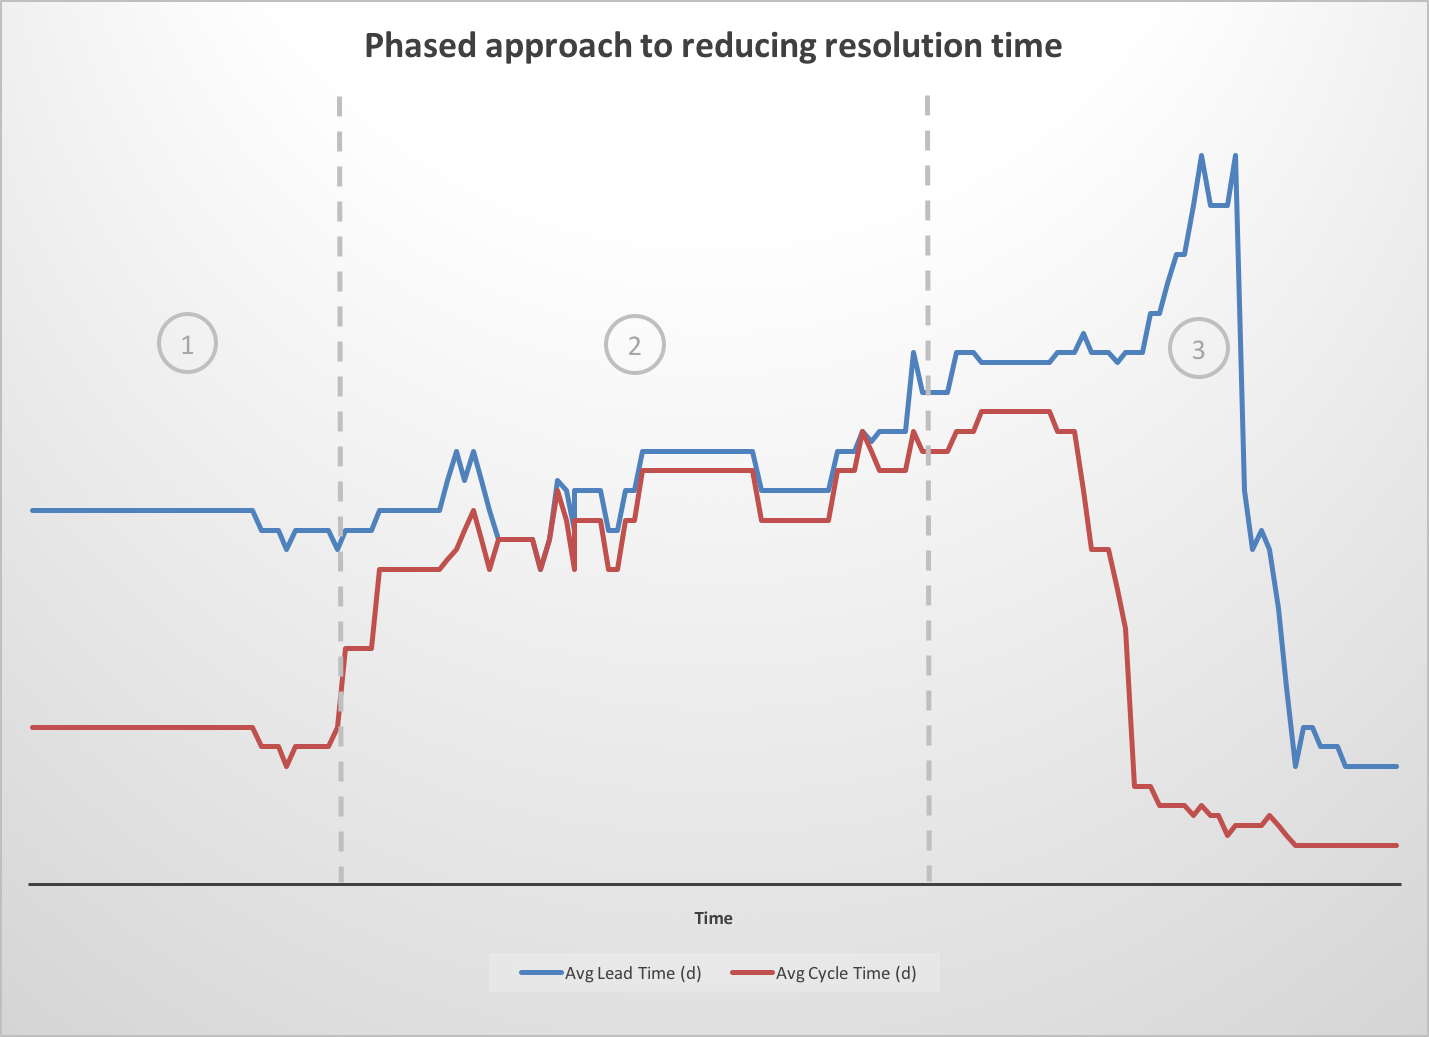 Chart: Phased approach to reducing resolution time